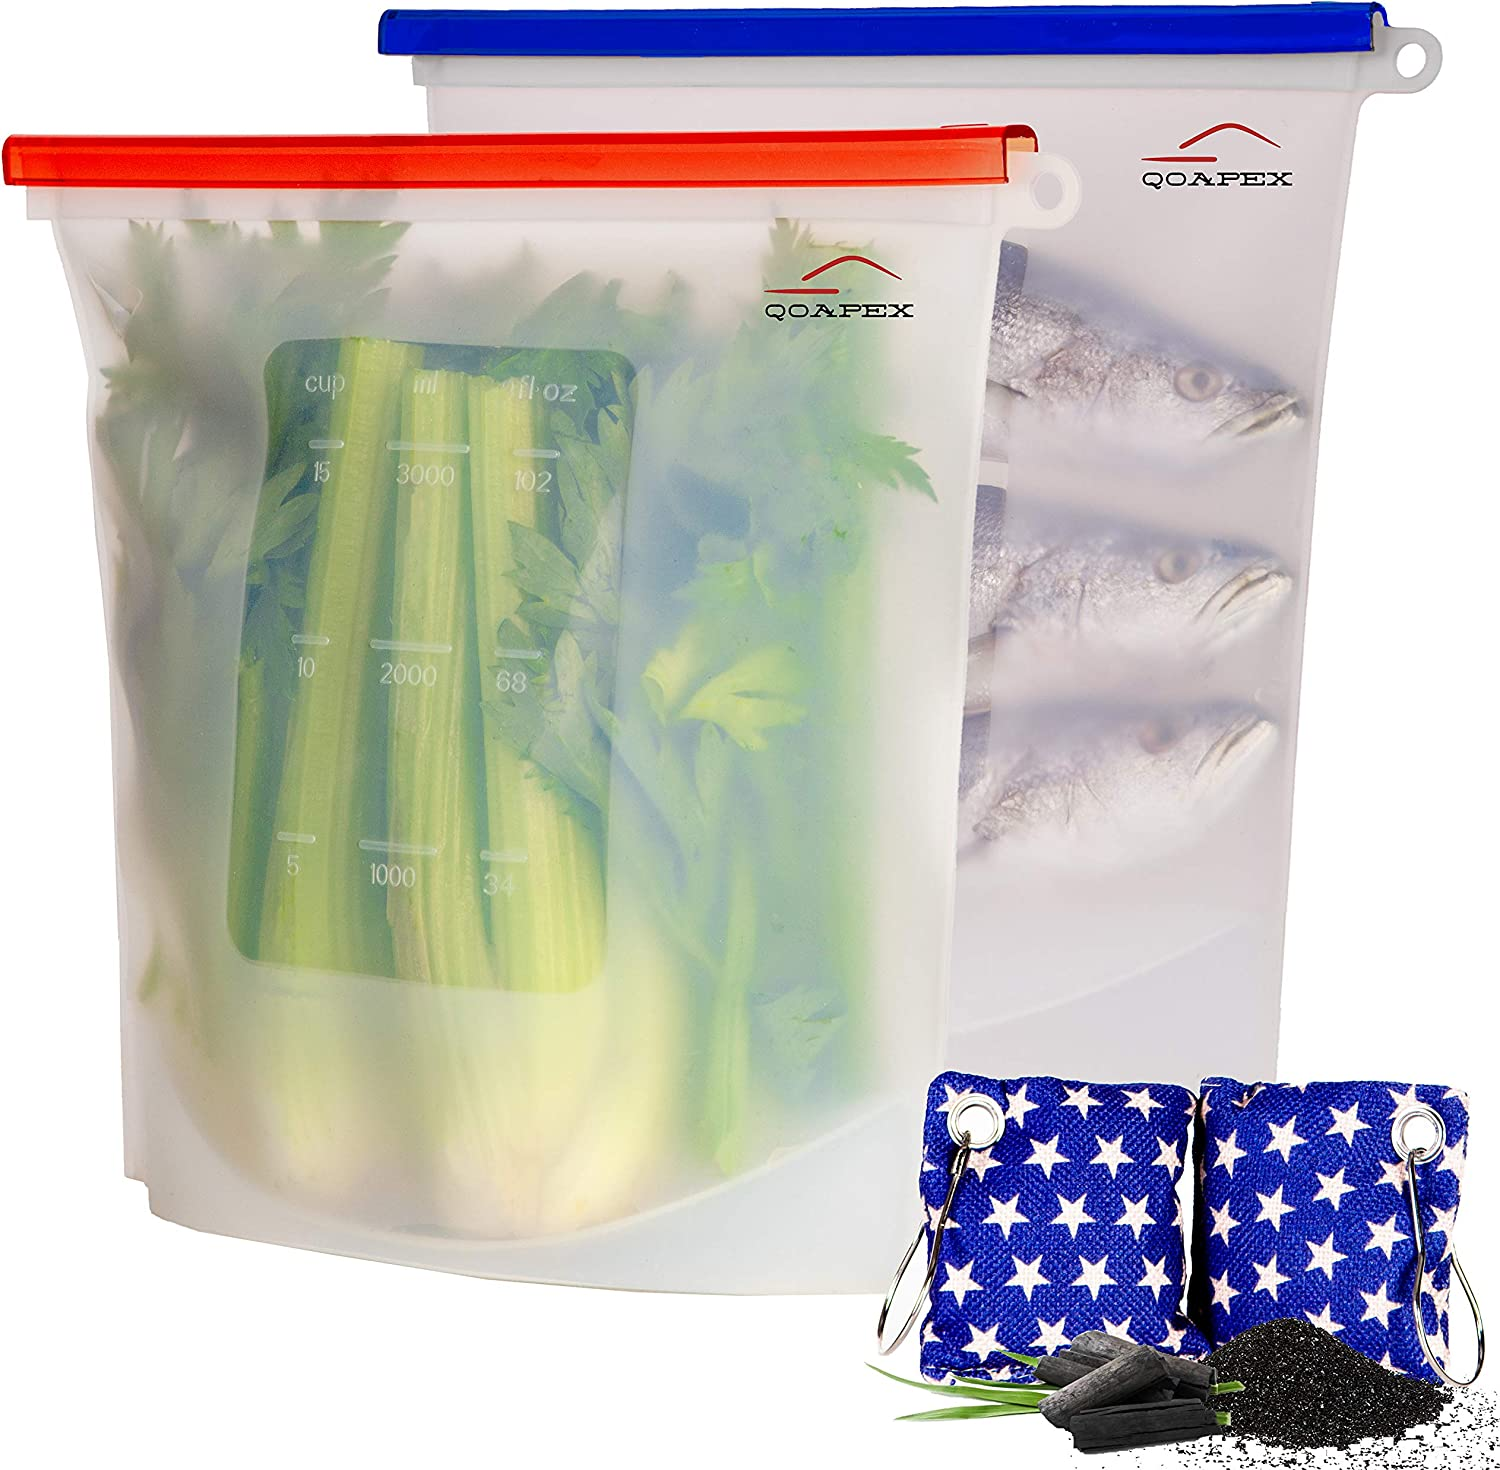 Qoapex Gallon Size, Reusable Silicone Food Storage Bags Silicone Bags Reusable Silicone Food Bag for Preservation of Lunch Snack Fruit, Silicone Food Bags Reusable storage Bags Freezer (2 Extra large)